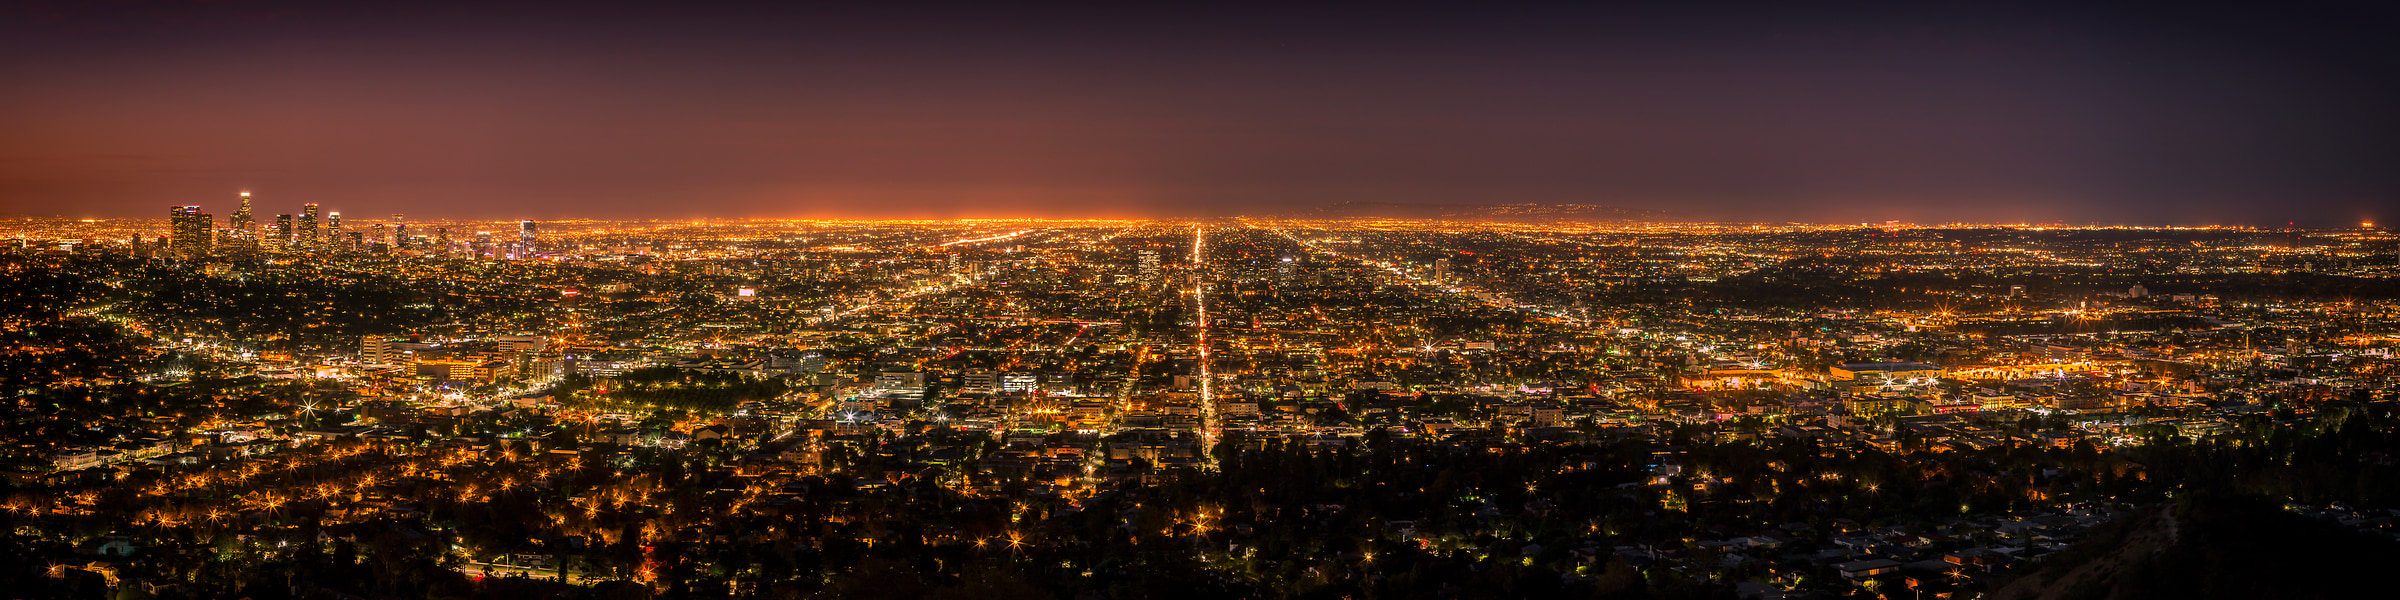 114 megapixels! A very high resolution, large-format VAST photo print of the Los Angeles and Hollywood skyline in California at sunrise and sunset; landscape photo created by cityscape photographer Guido Brandt